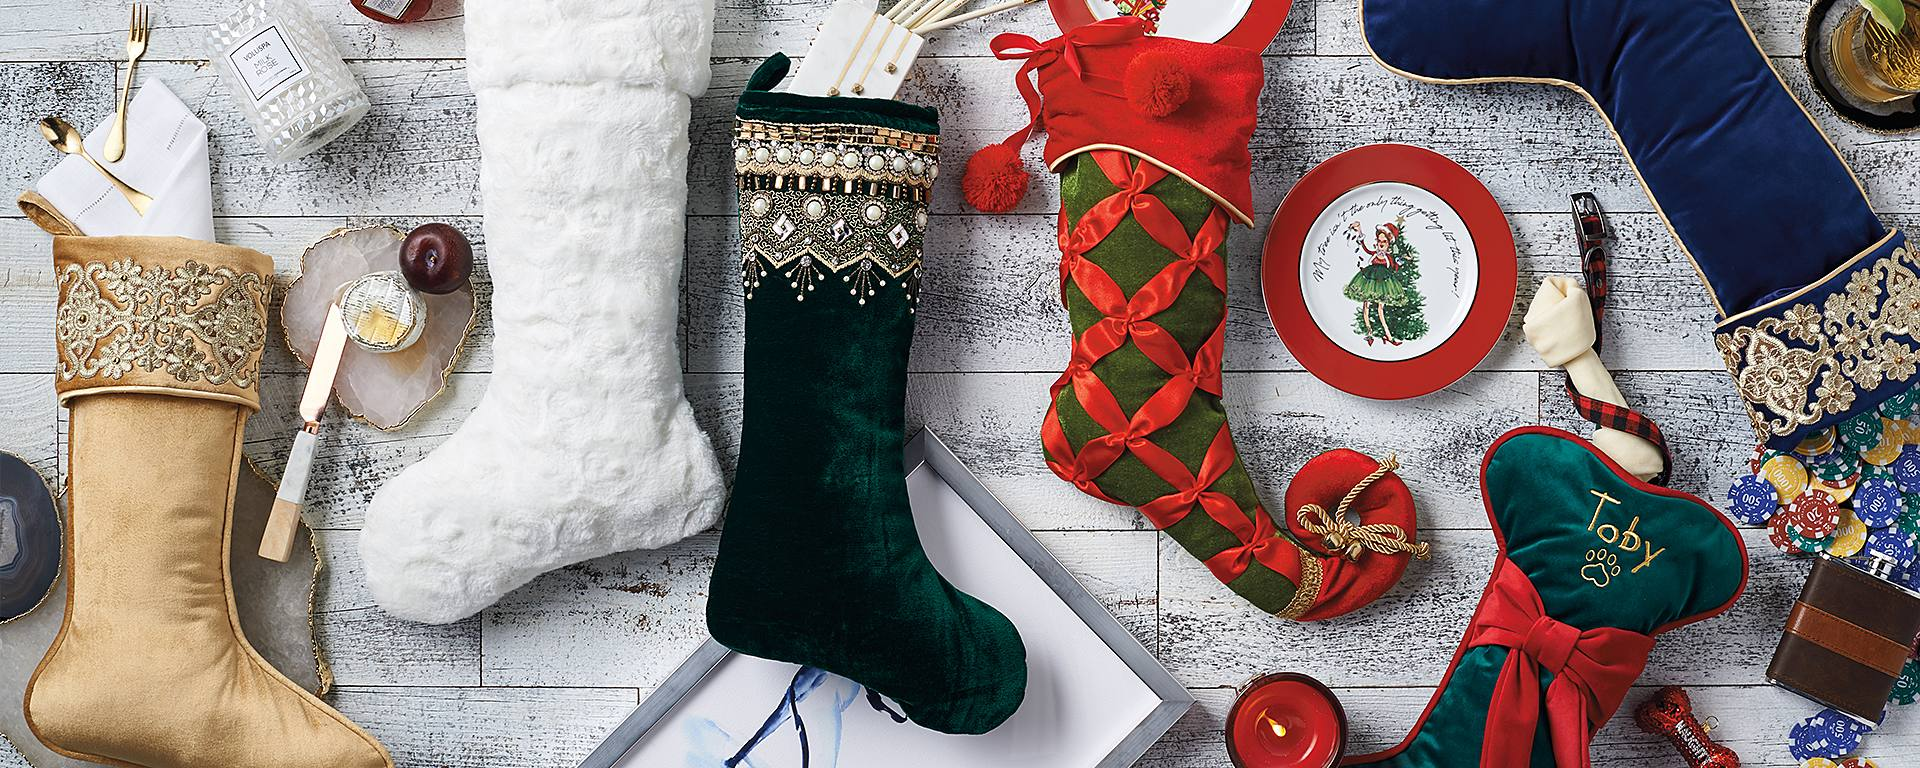 A Very Merry Stocking Gift Guide